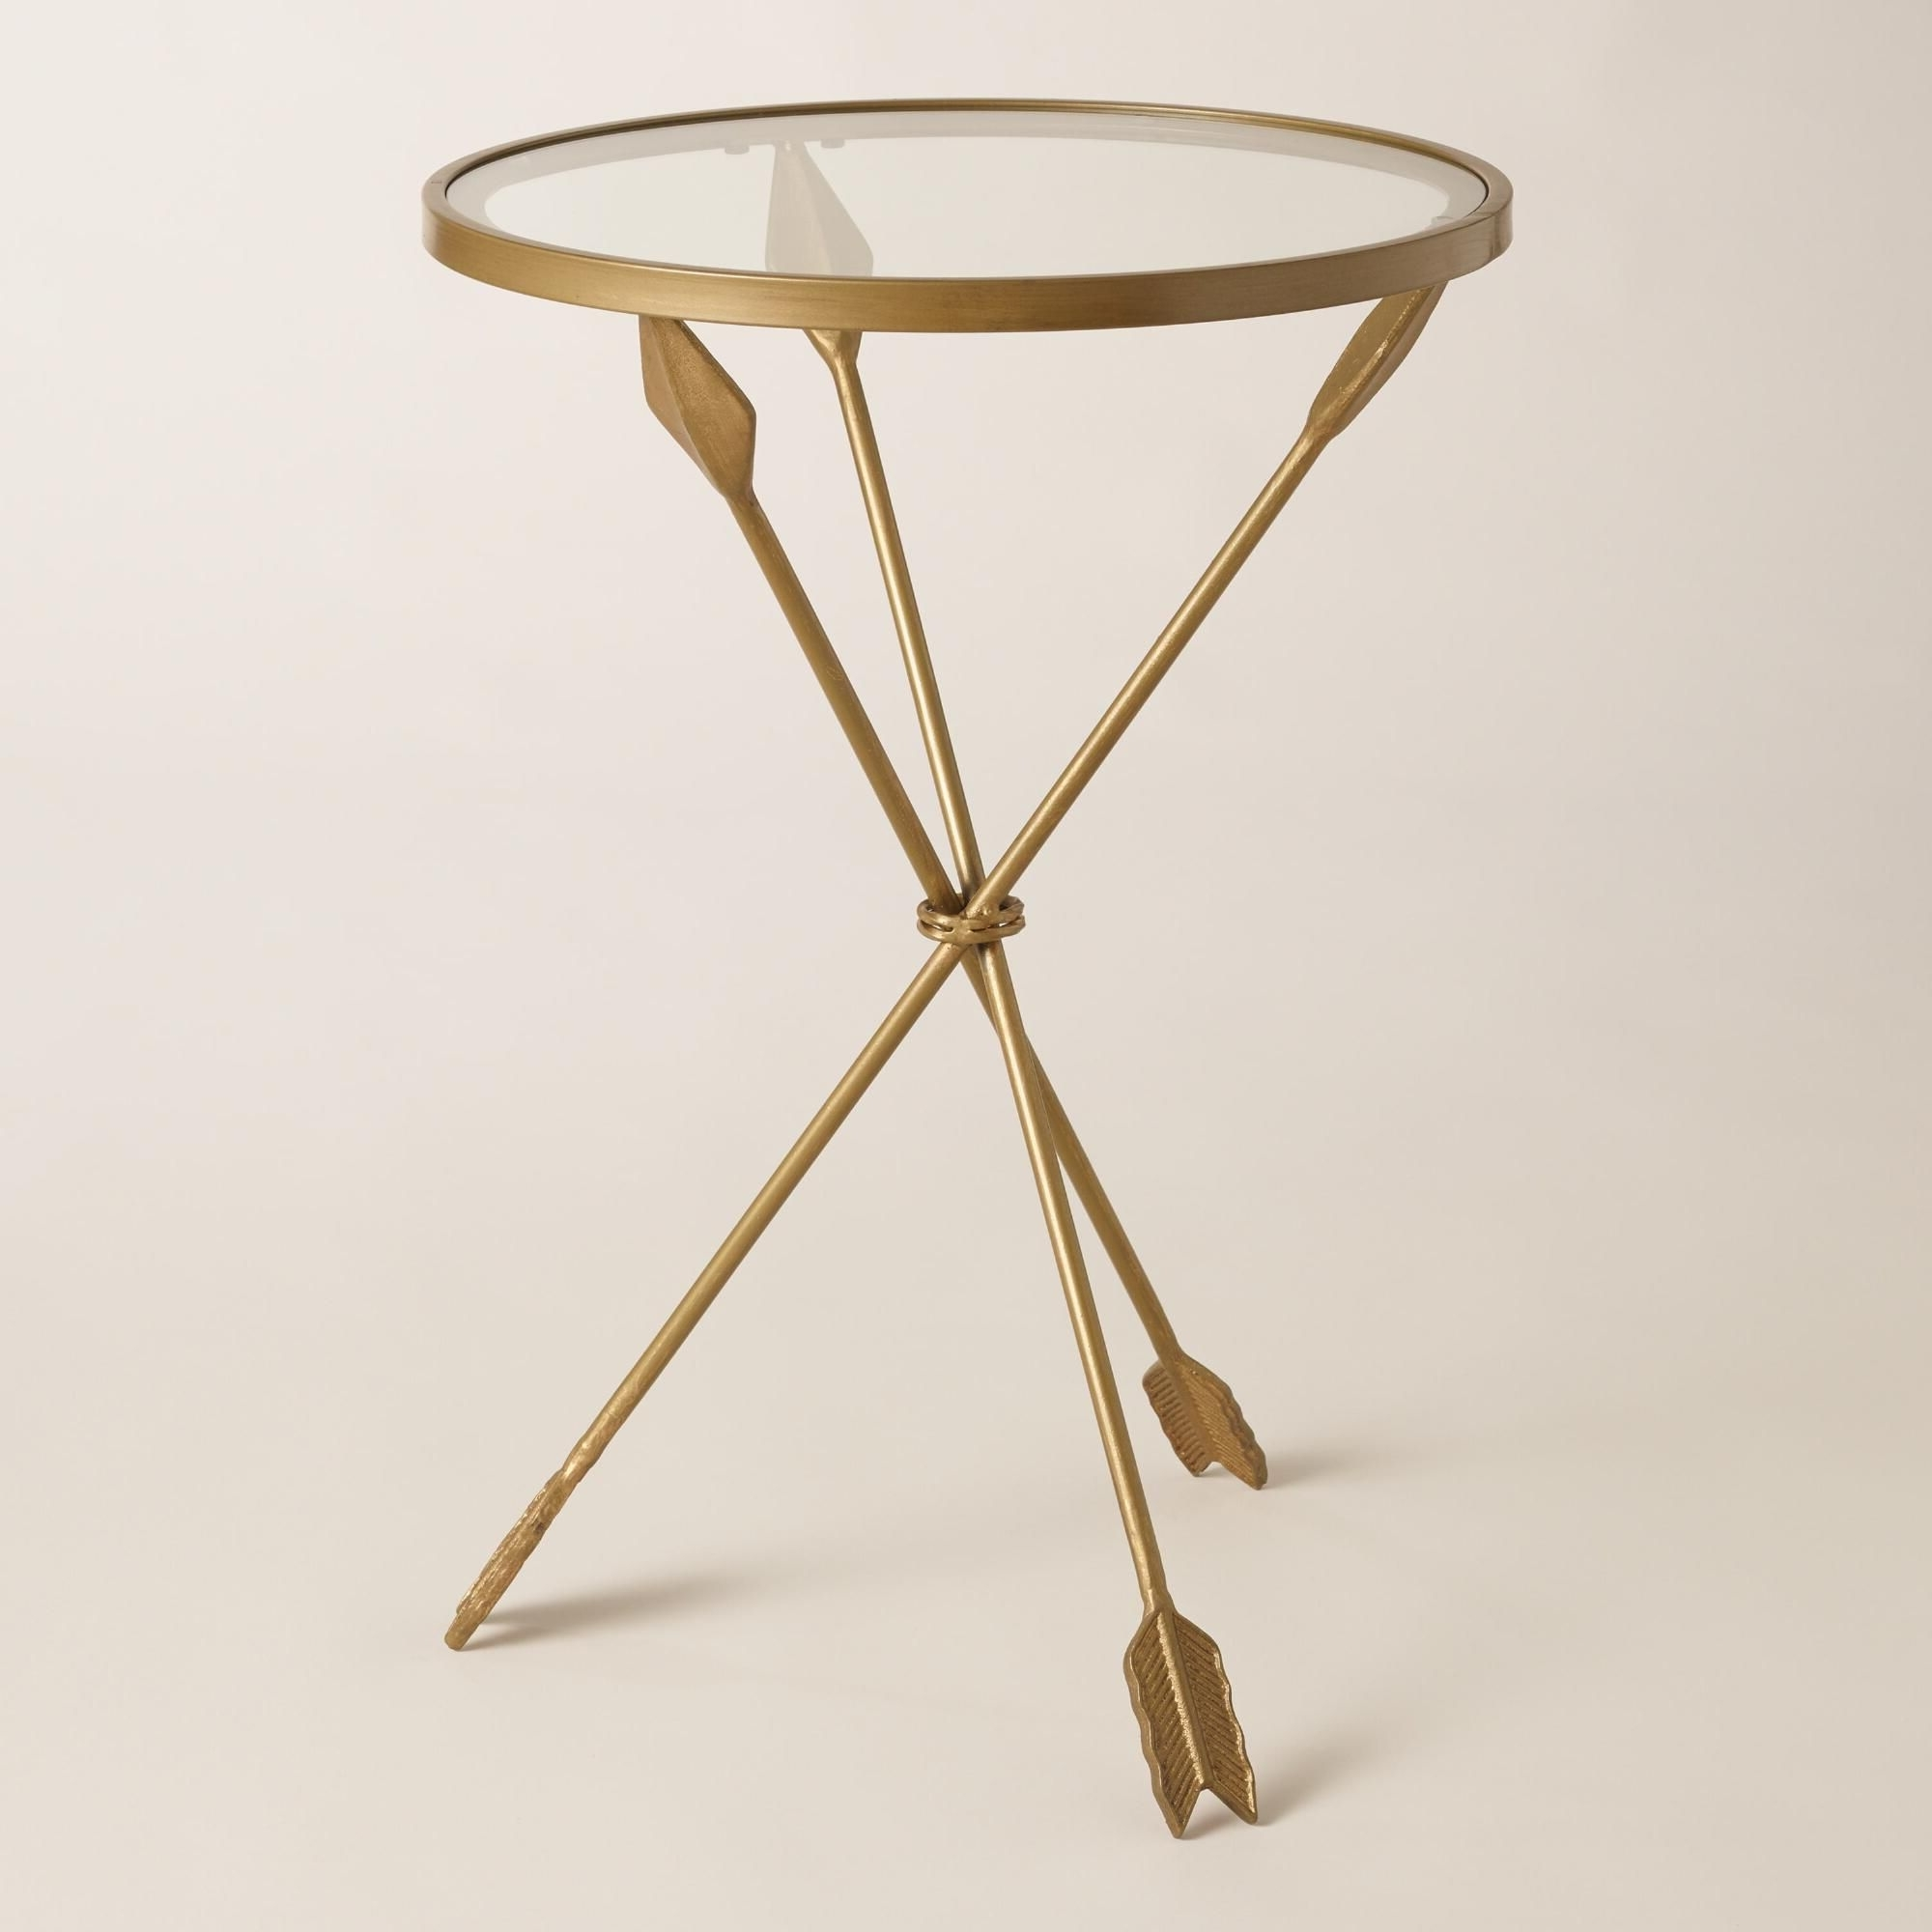 Distressed Gold Arrows Create The Tripod Base Of Our Side Table, A With 2018 Jackson Marble Side Tables (View 11 of 20)